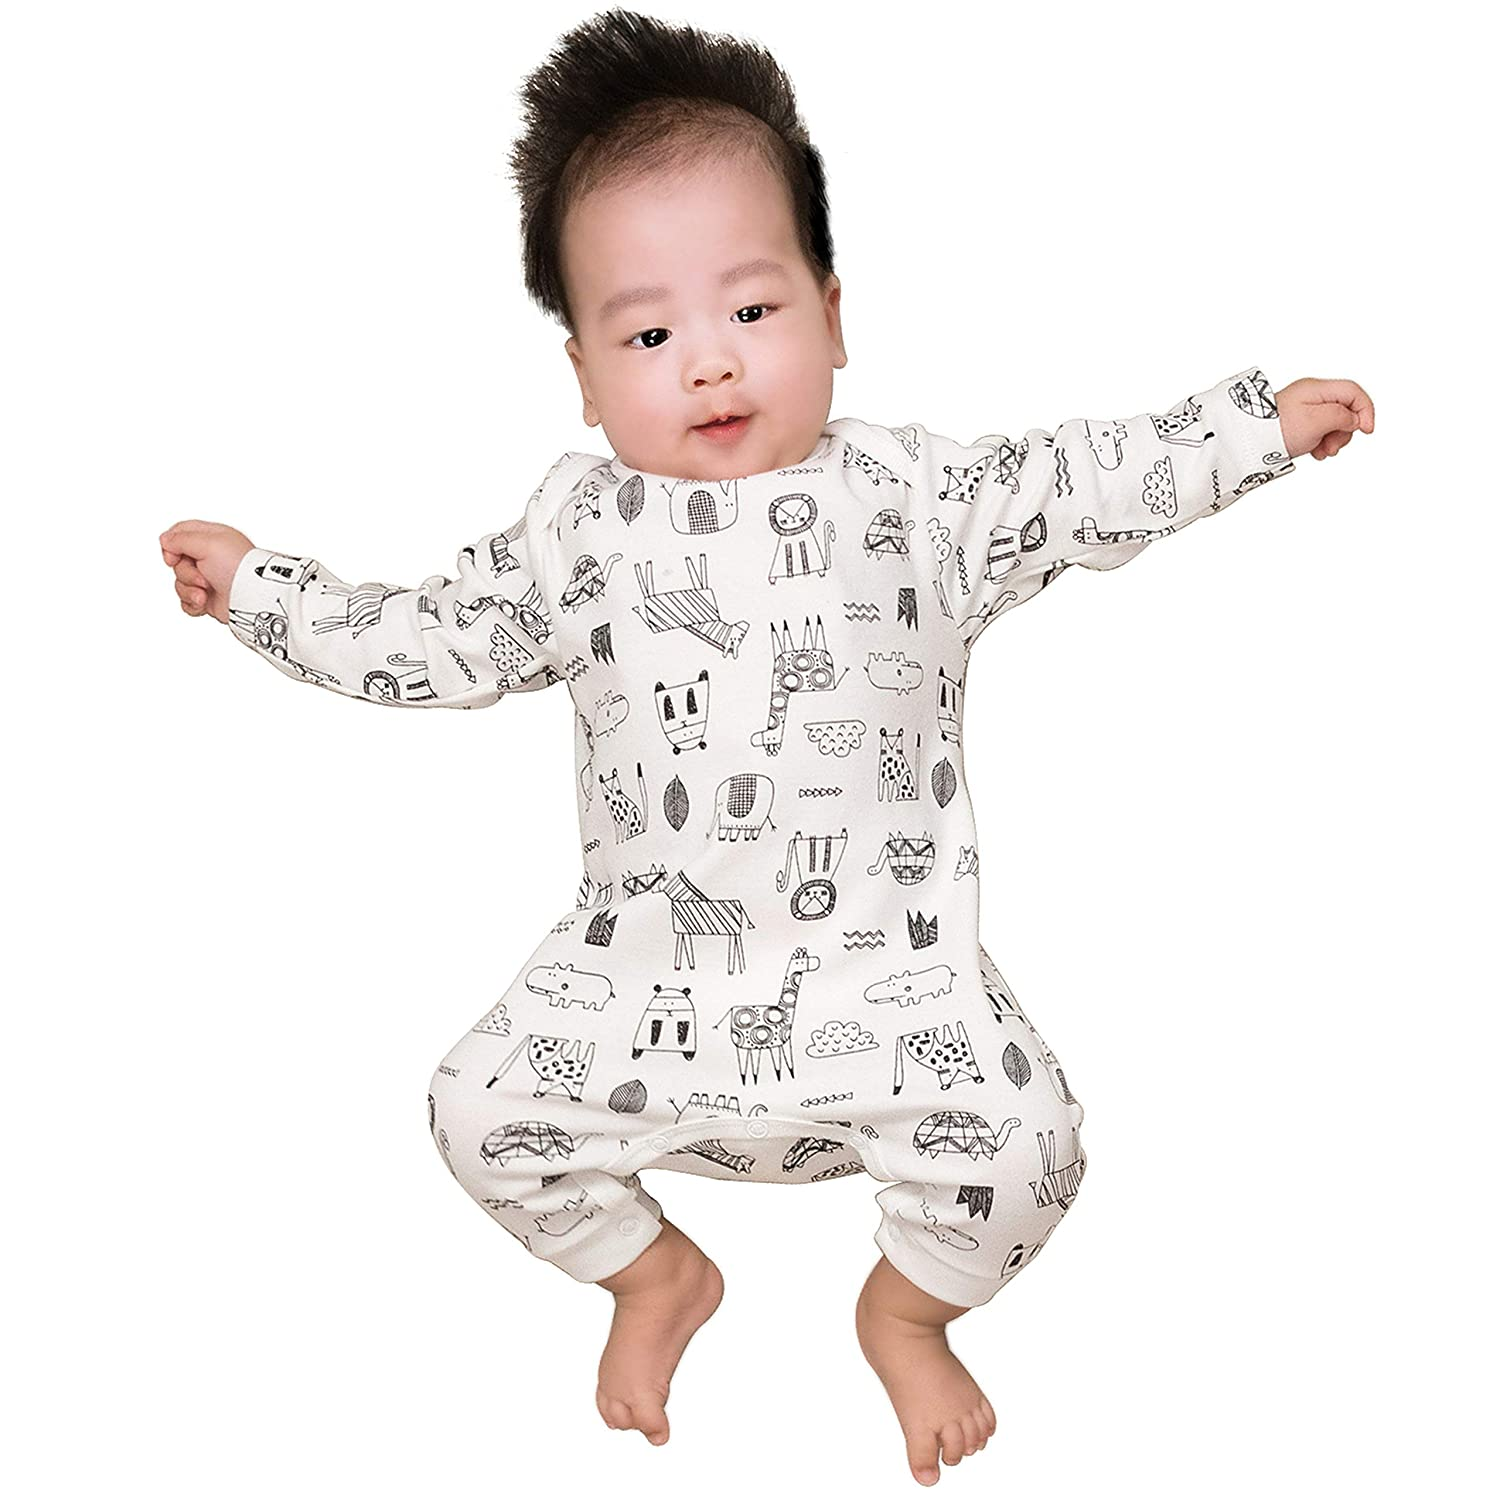 Unisex Baby Long Sleeve Bodysuit Cotton Infant Onesies for 0-12 Months